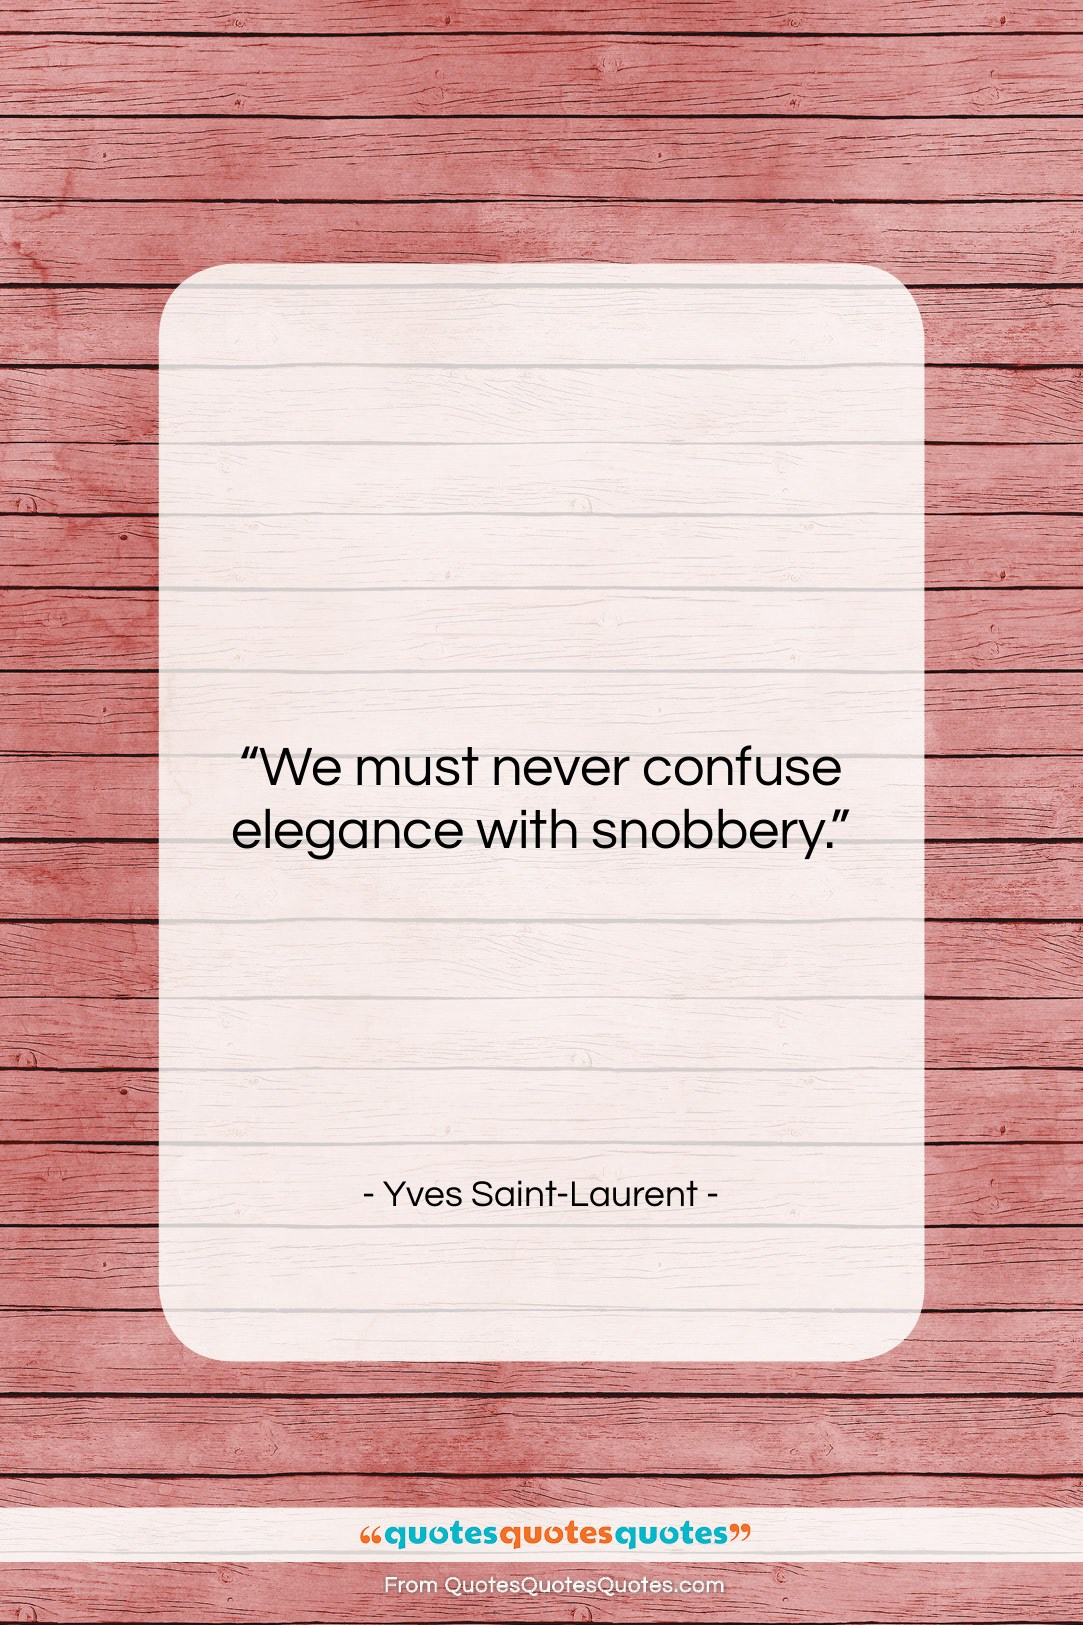 Get The Whole Yves Saint Laurent Quote We Must Never